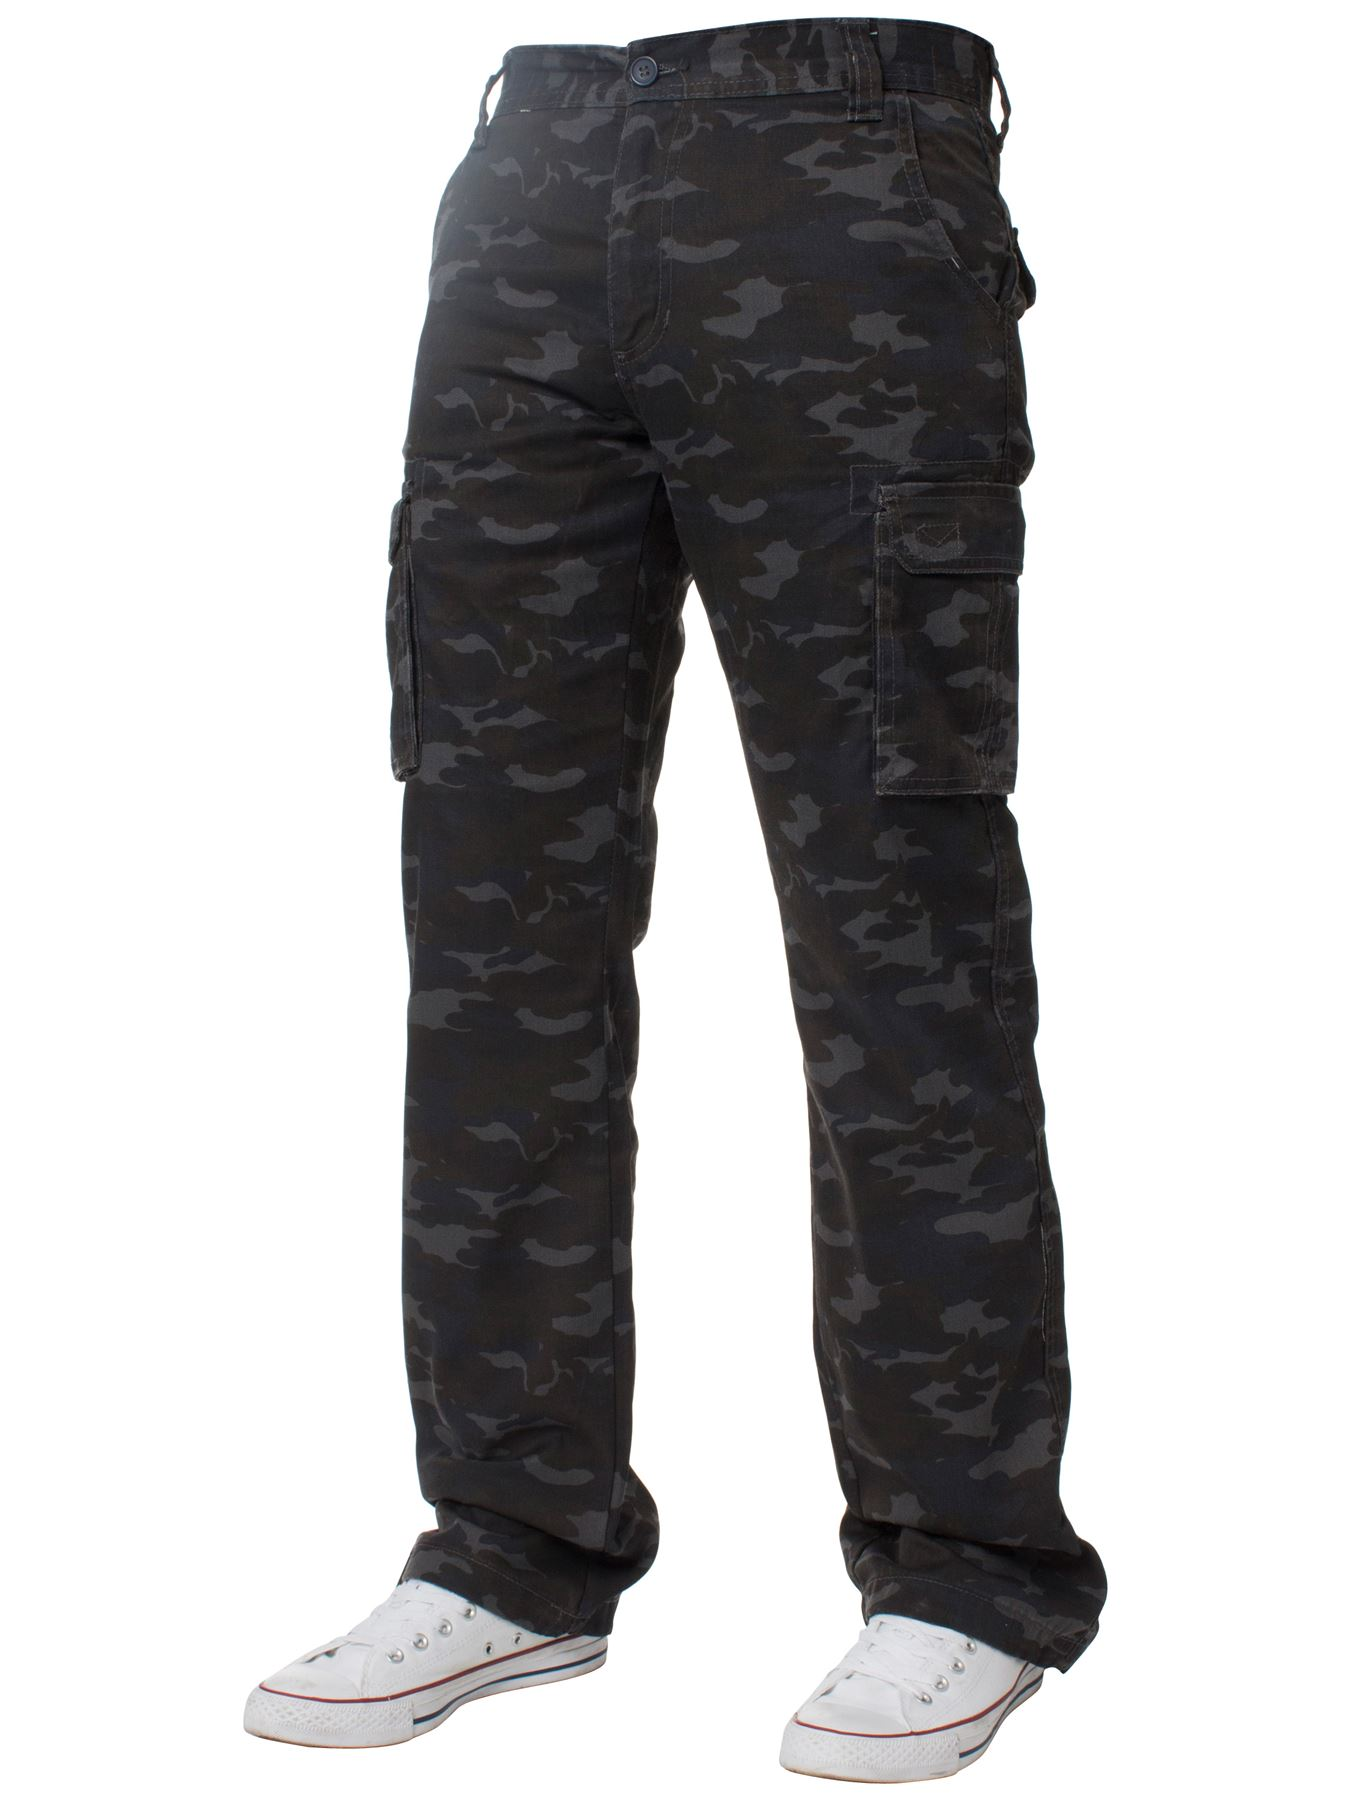 Kruze-Mens-Military-Combat-Trousers-Camouflage-Cargo-Camo-Army-Casual-Work-Pants miniatura 31